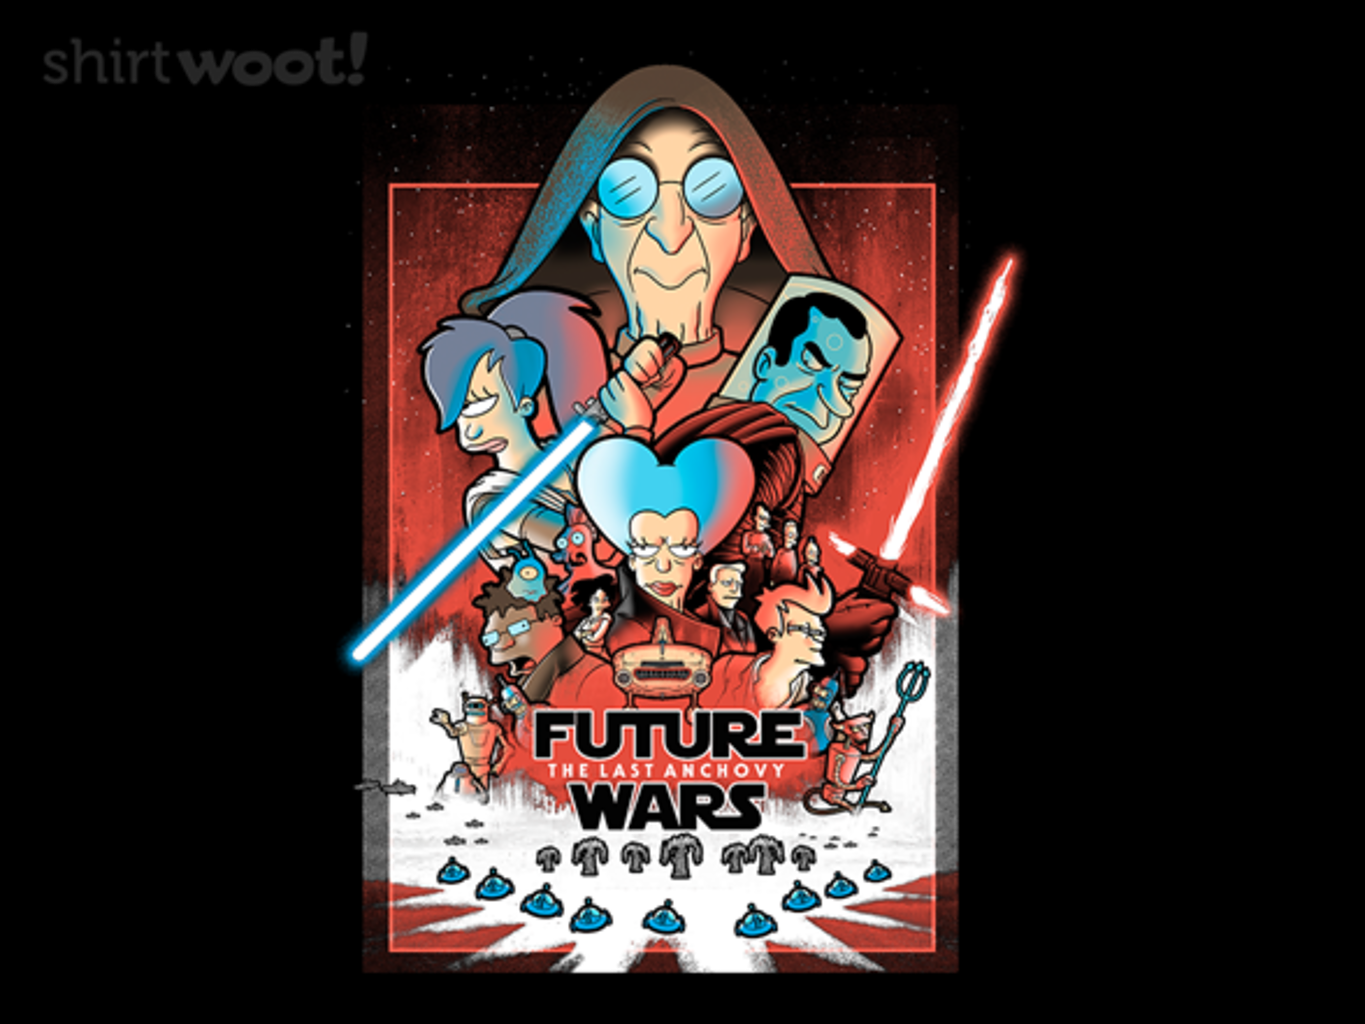 Woot!: Future Wars: The Last Anchovy